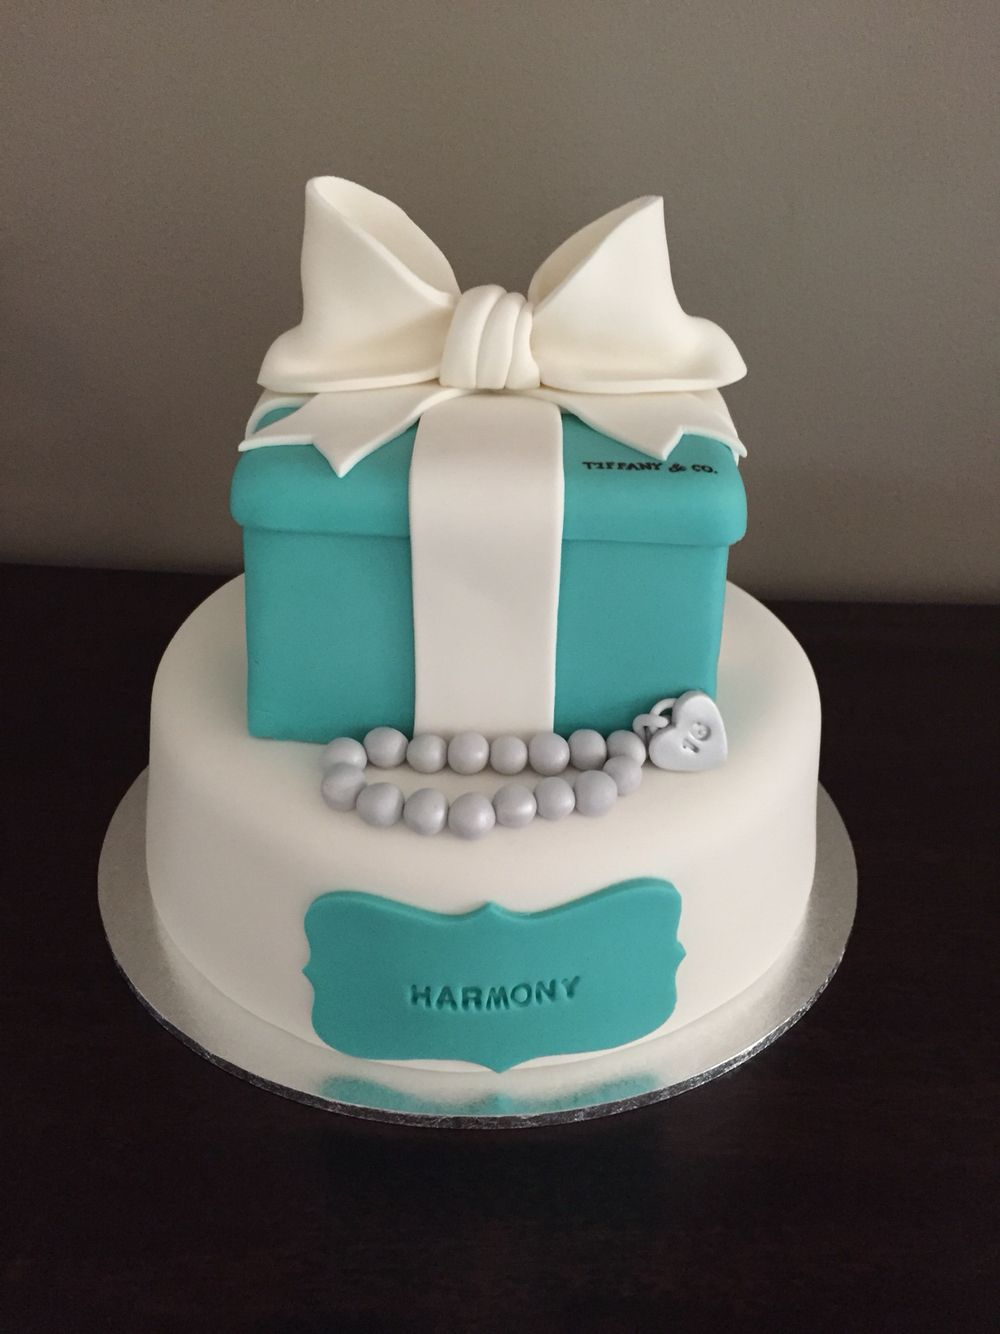 Tiffany And Co Cake I Made For My Nieces Birthday Happy Birthday